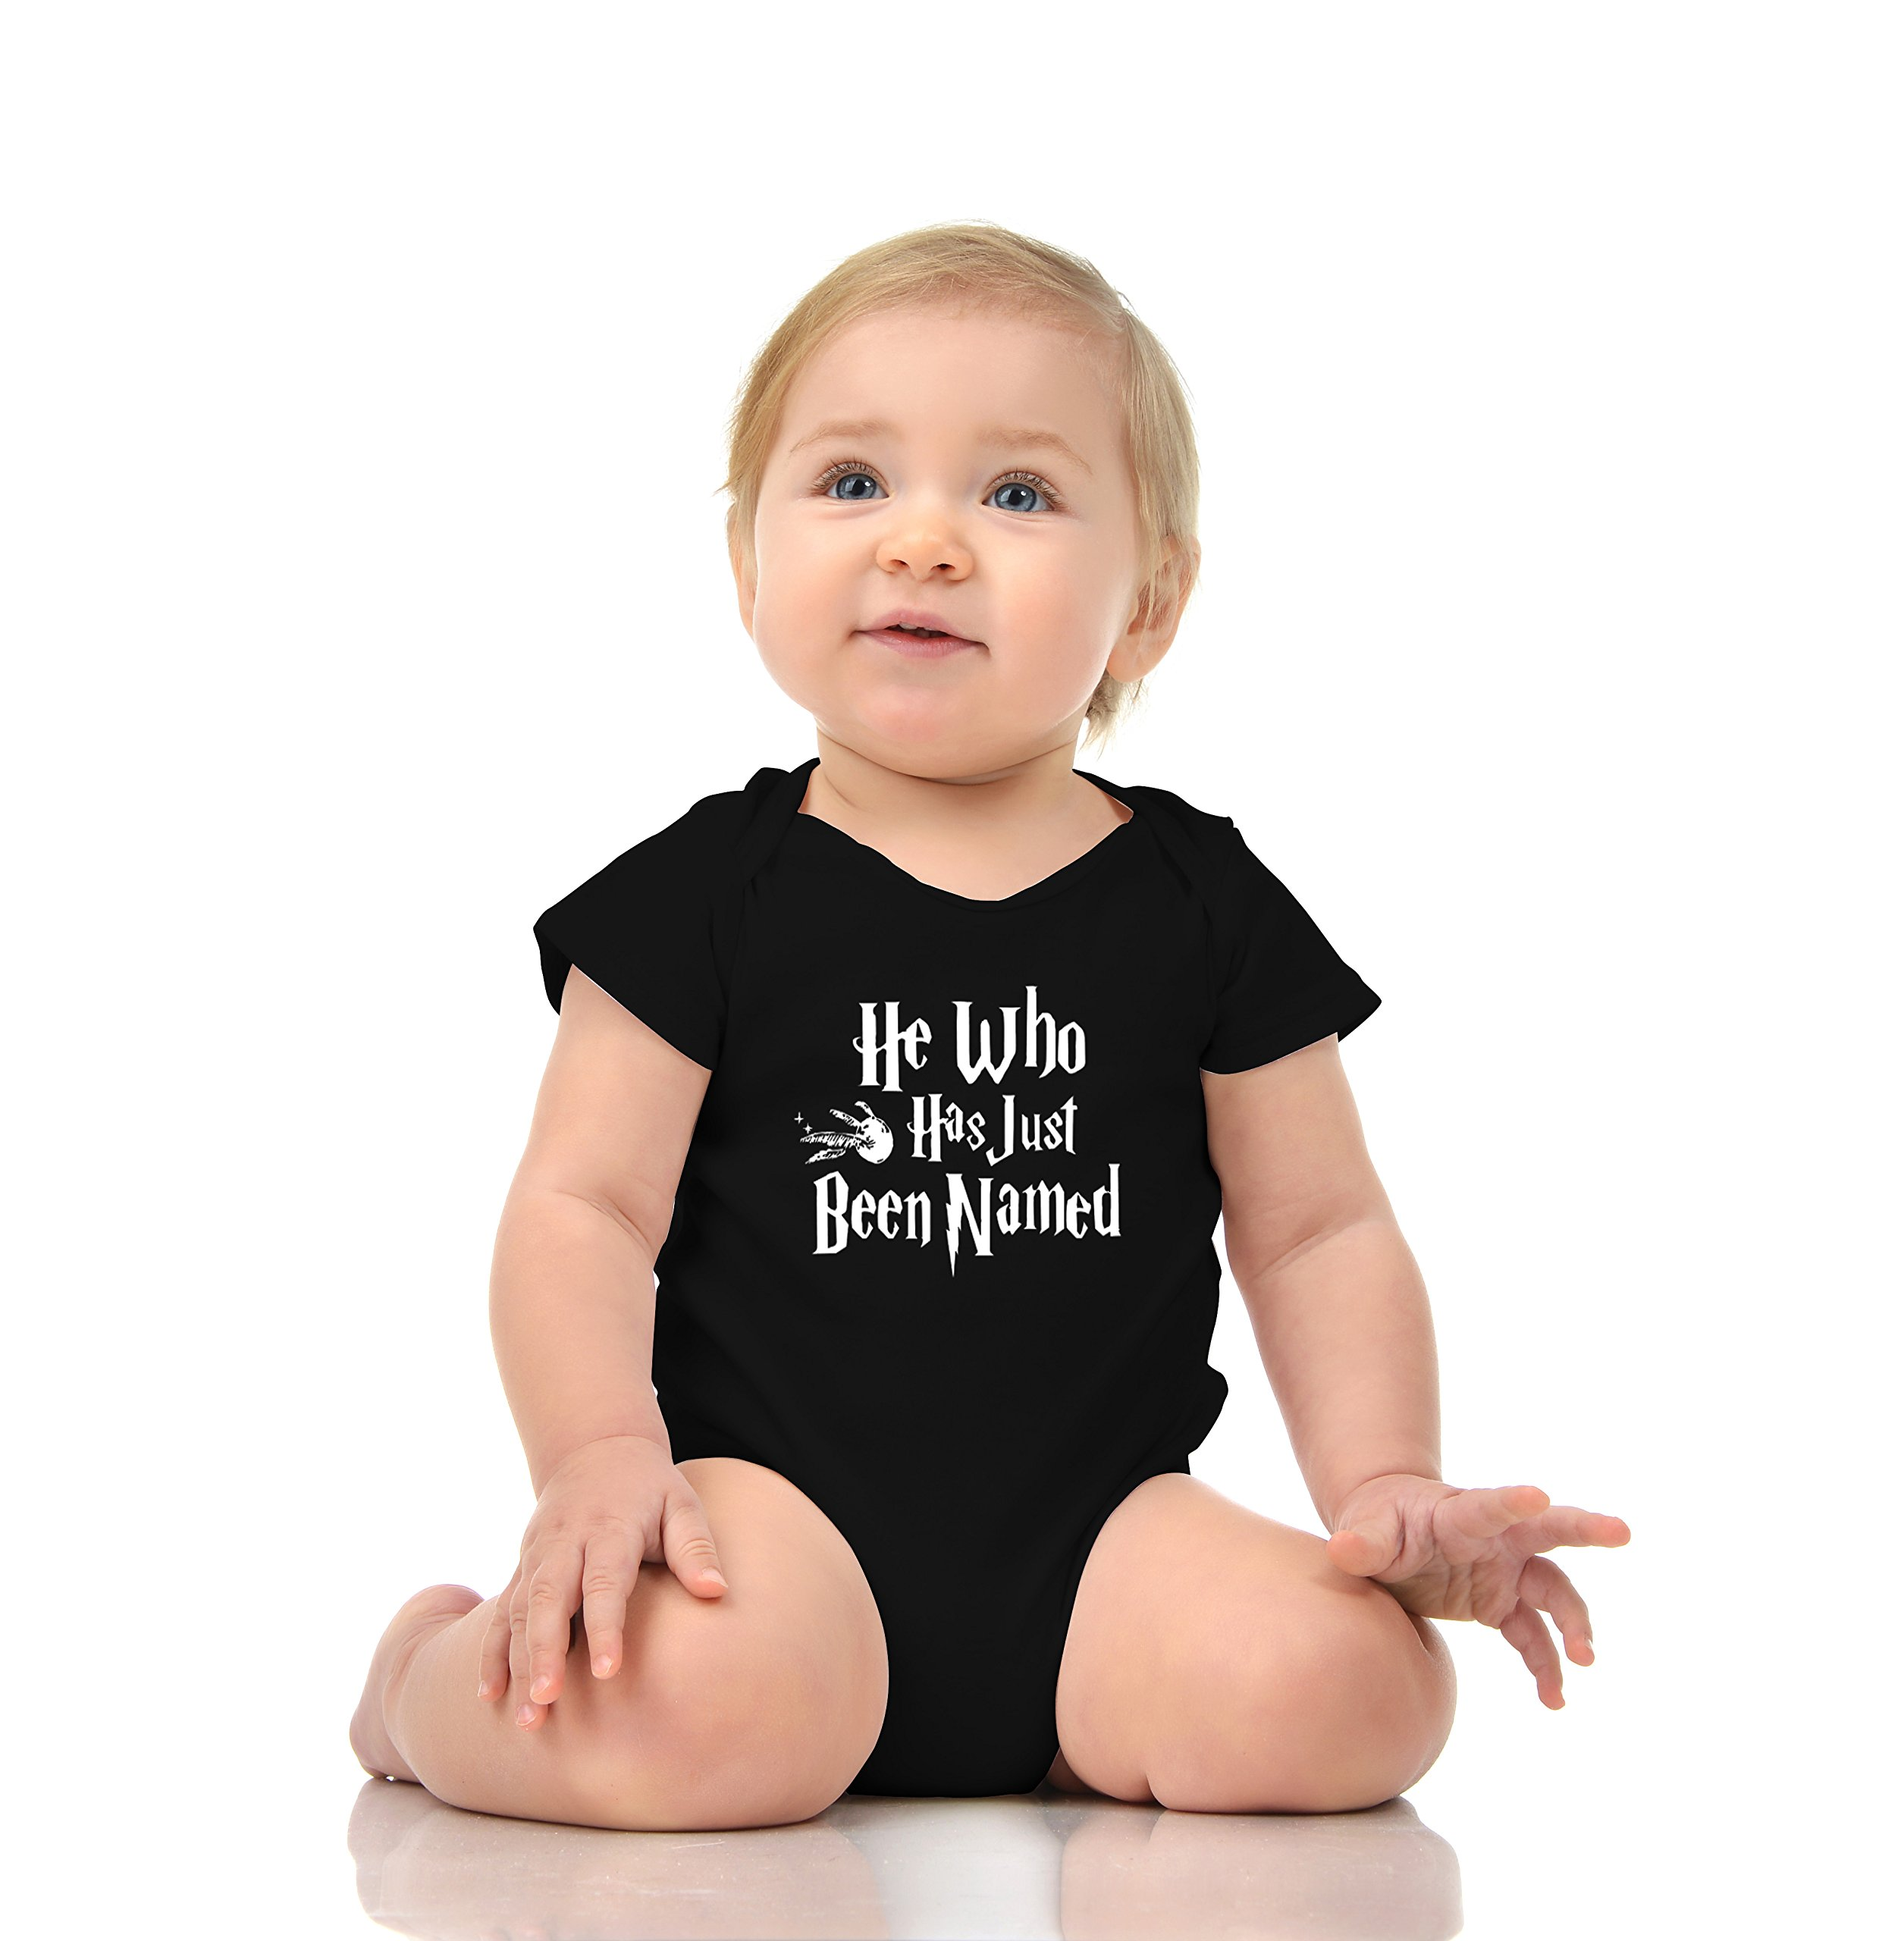 Unisex Cotton Romper Baby Bodysuit He Who Has JUST BEEN NAMED